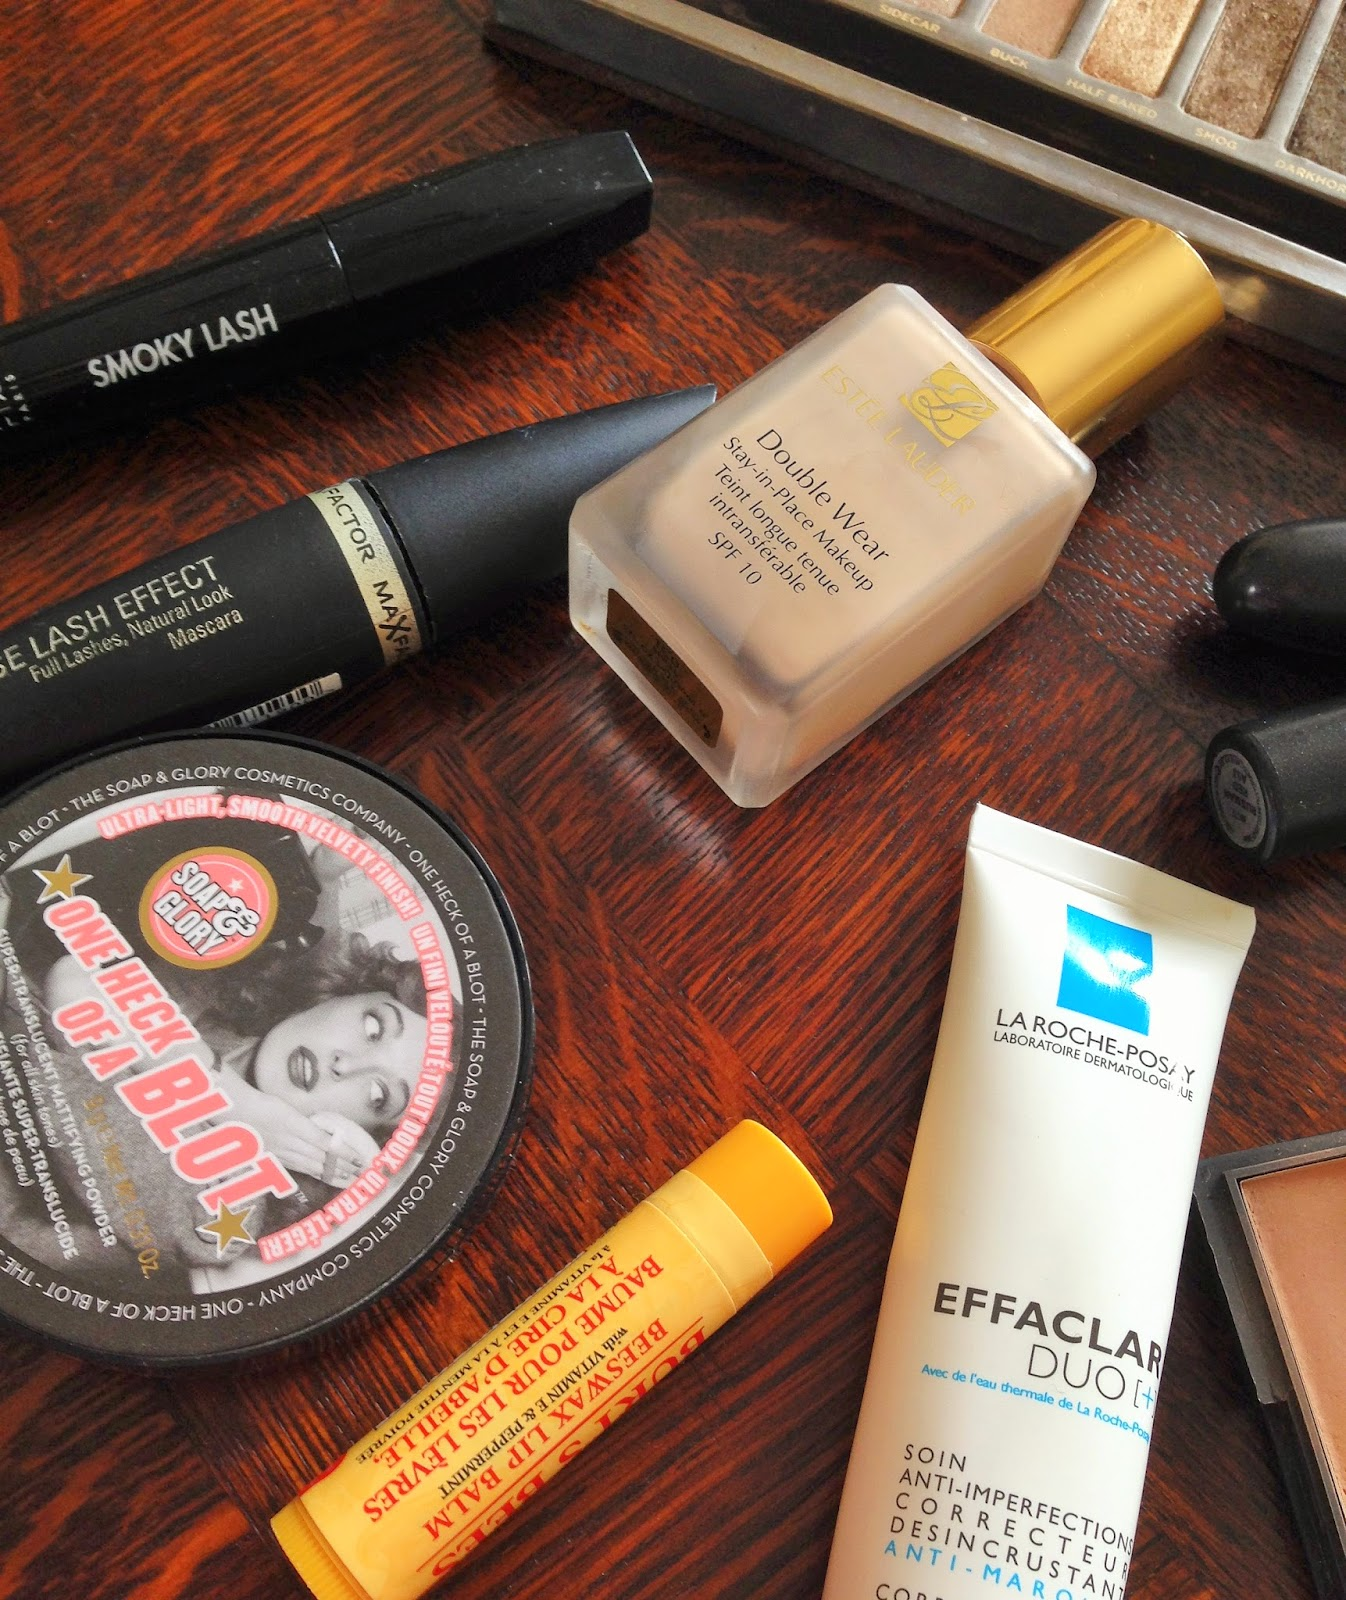 Holy Grail Blogger Soap and Glory Burts Bees Estee Lauder MUFE Max Factor